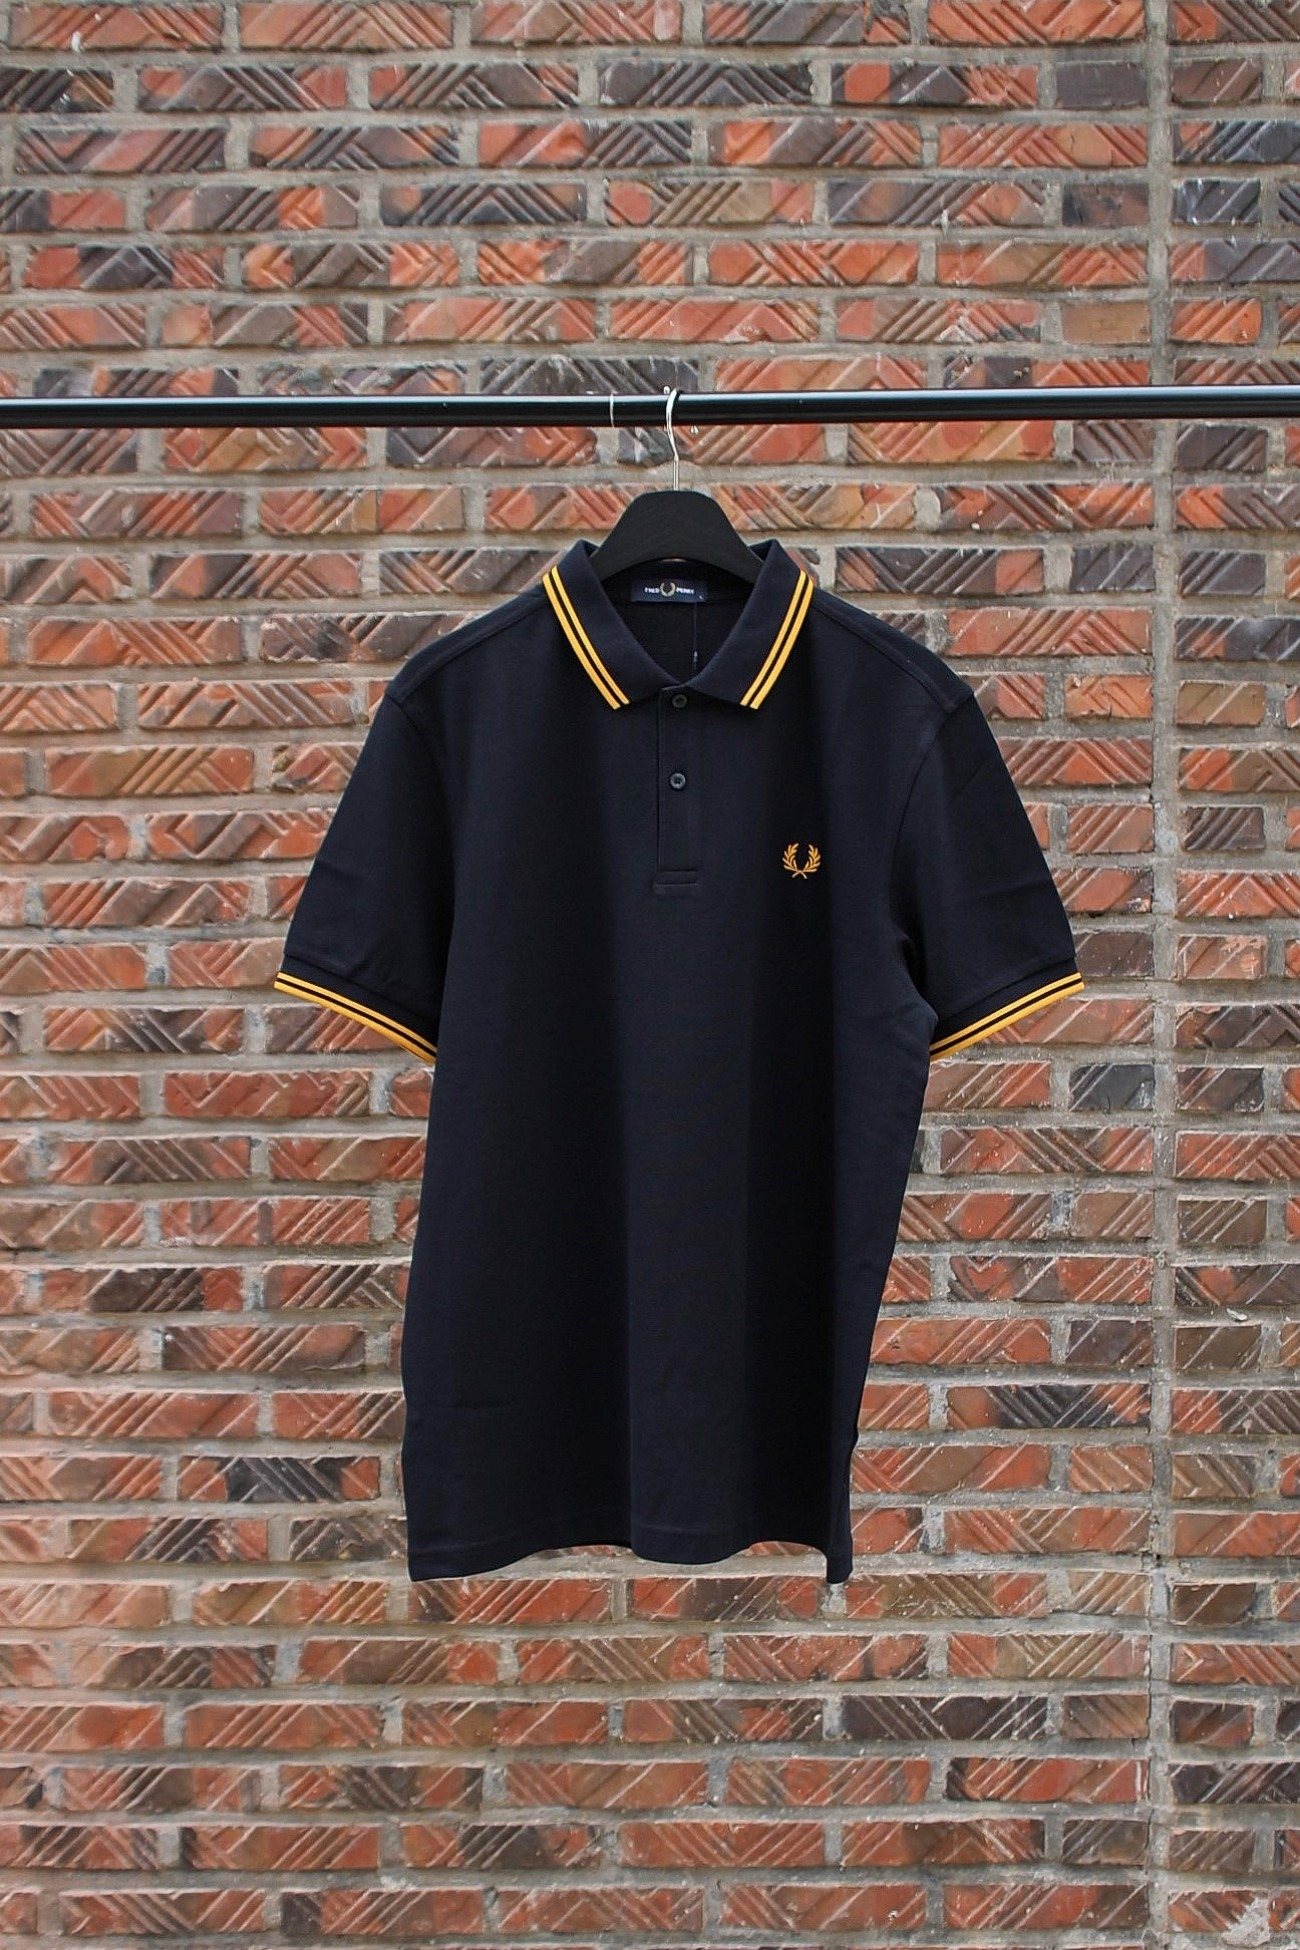 [FRED PERRY] Twin Tipped Fred Perry Shirt - Navy / Gold